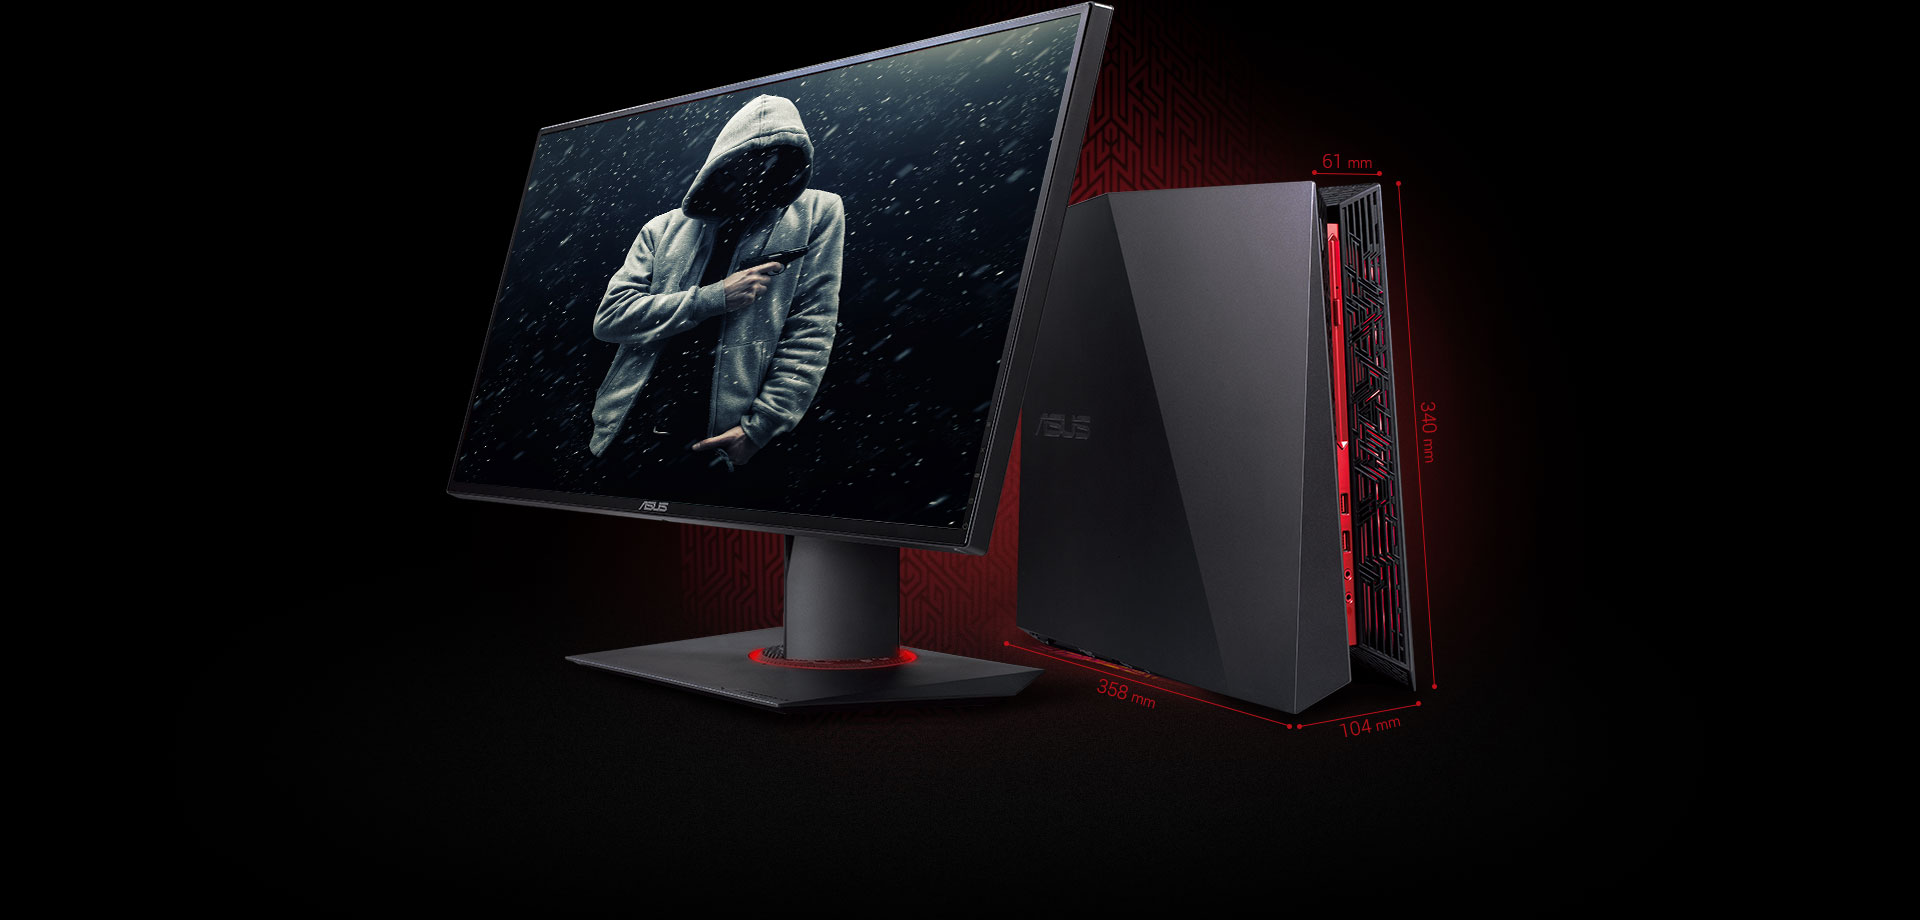 Rog G20ci Tower Pcs Asus Usa 1 Set Komputer Lengkap A One Stop Gaming And Entertainment System G20 Is To Dominate The Field Of Small Form Factor Desktops Despite Its Size It Gives You